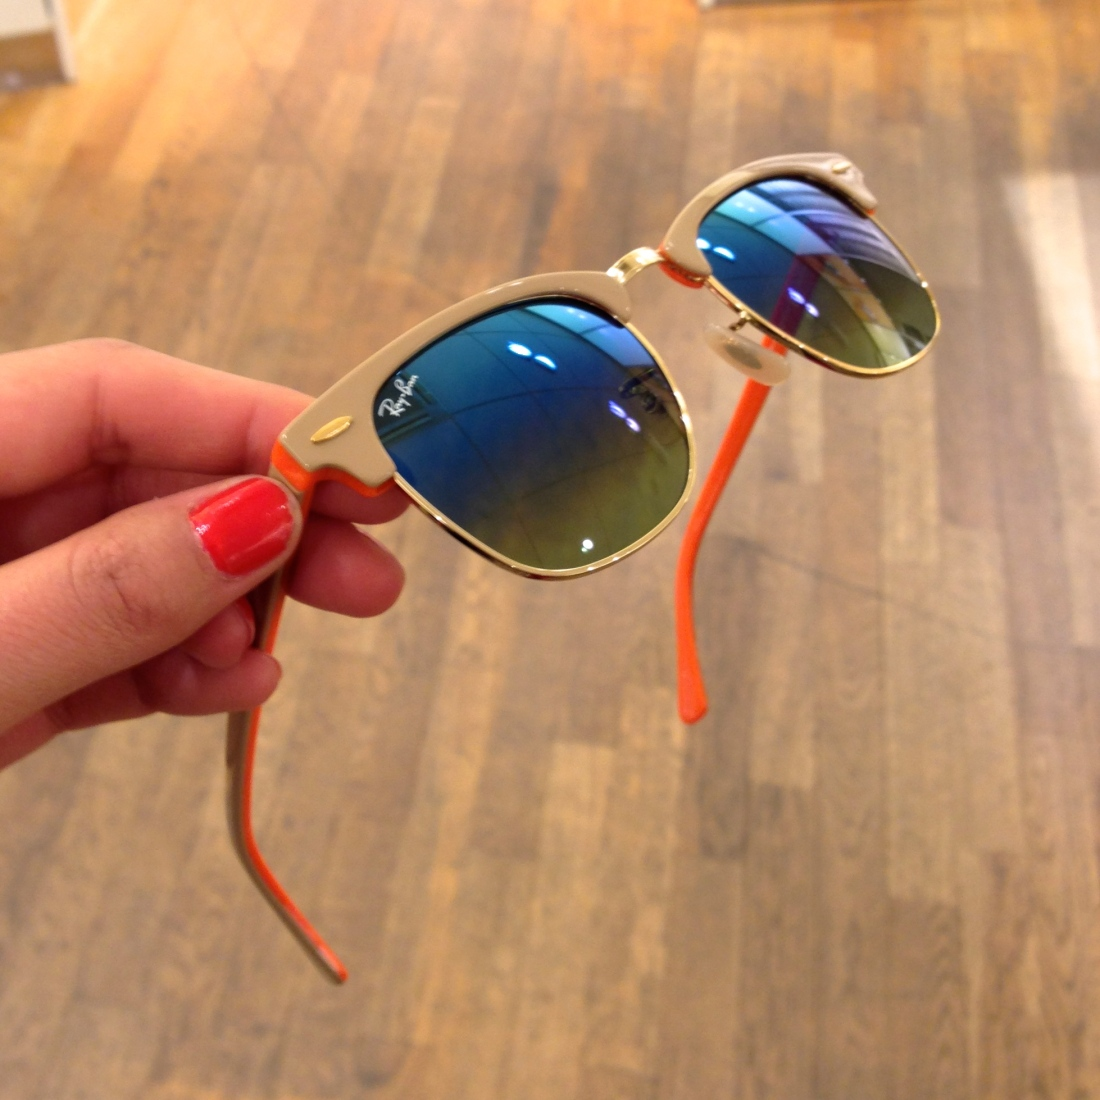 Ray-ban favorite pieces of 2013